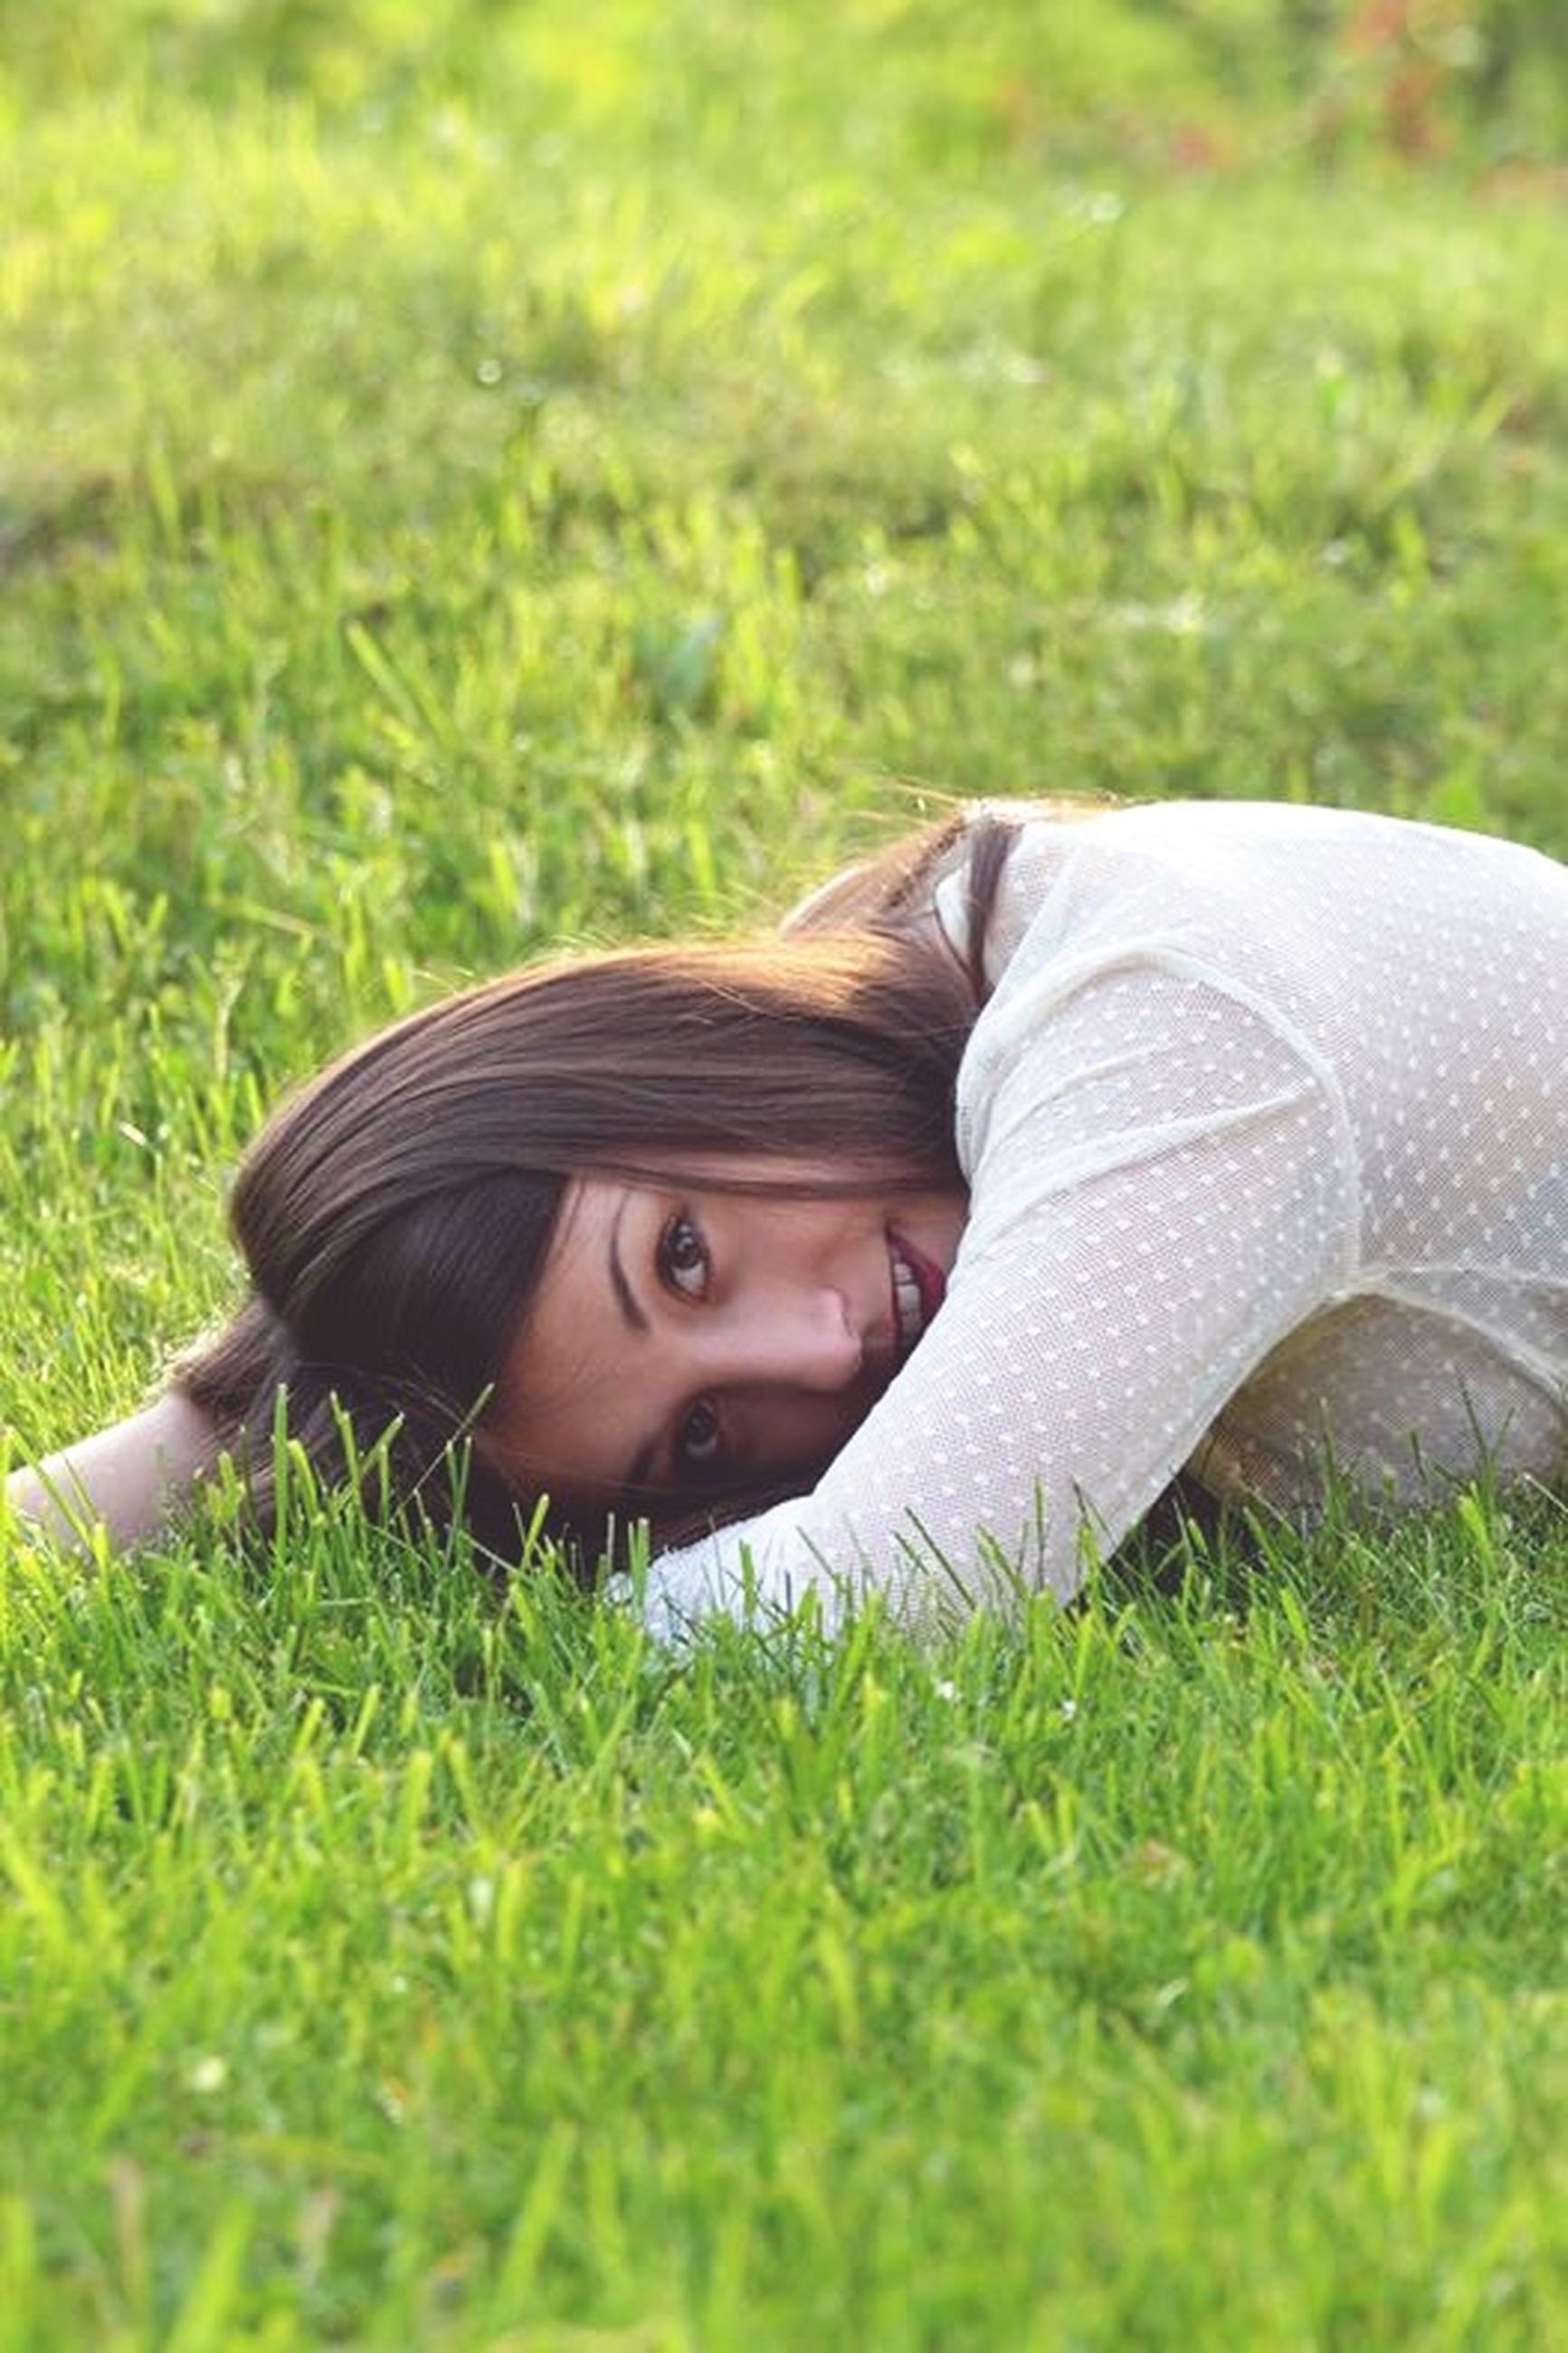 grass, person, lifestyles, leisure activity, relaxation, young adult, field, grassy, casual clothing, young women, portrait, lying down, looking at camera, headshot, smiling, childhood, green color, innocence